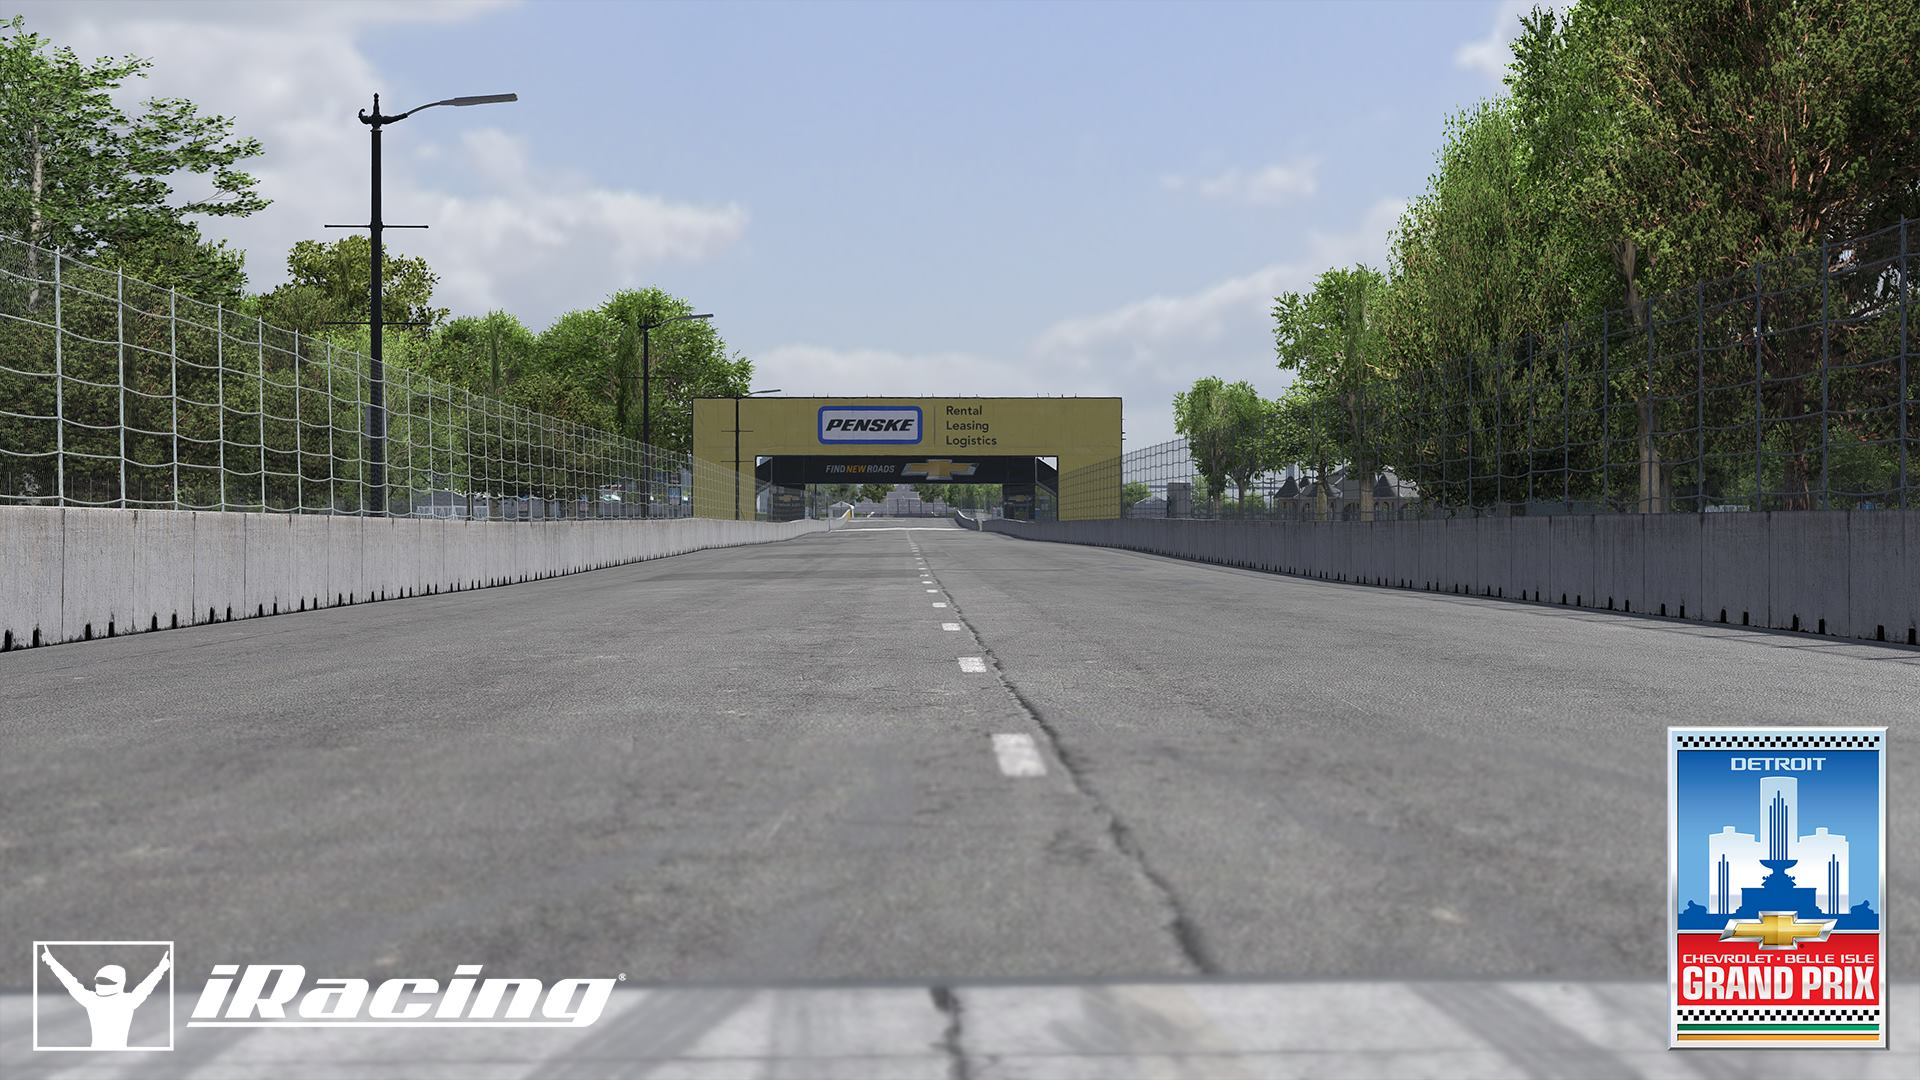 iRacing Belle Isle Circuit preview 1